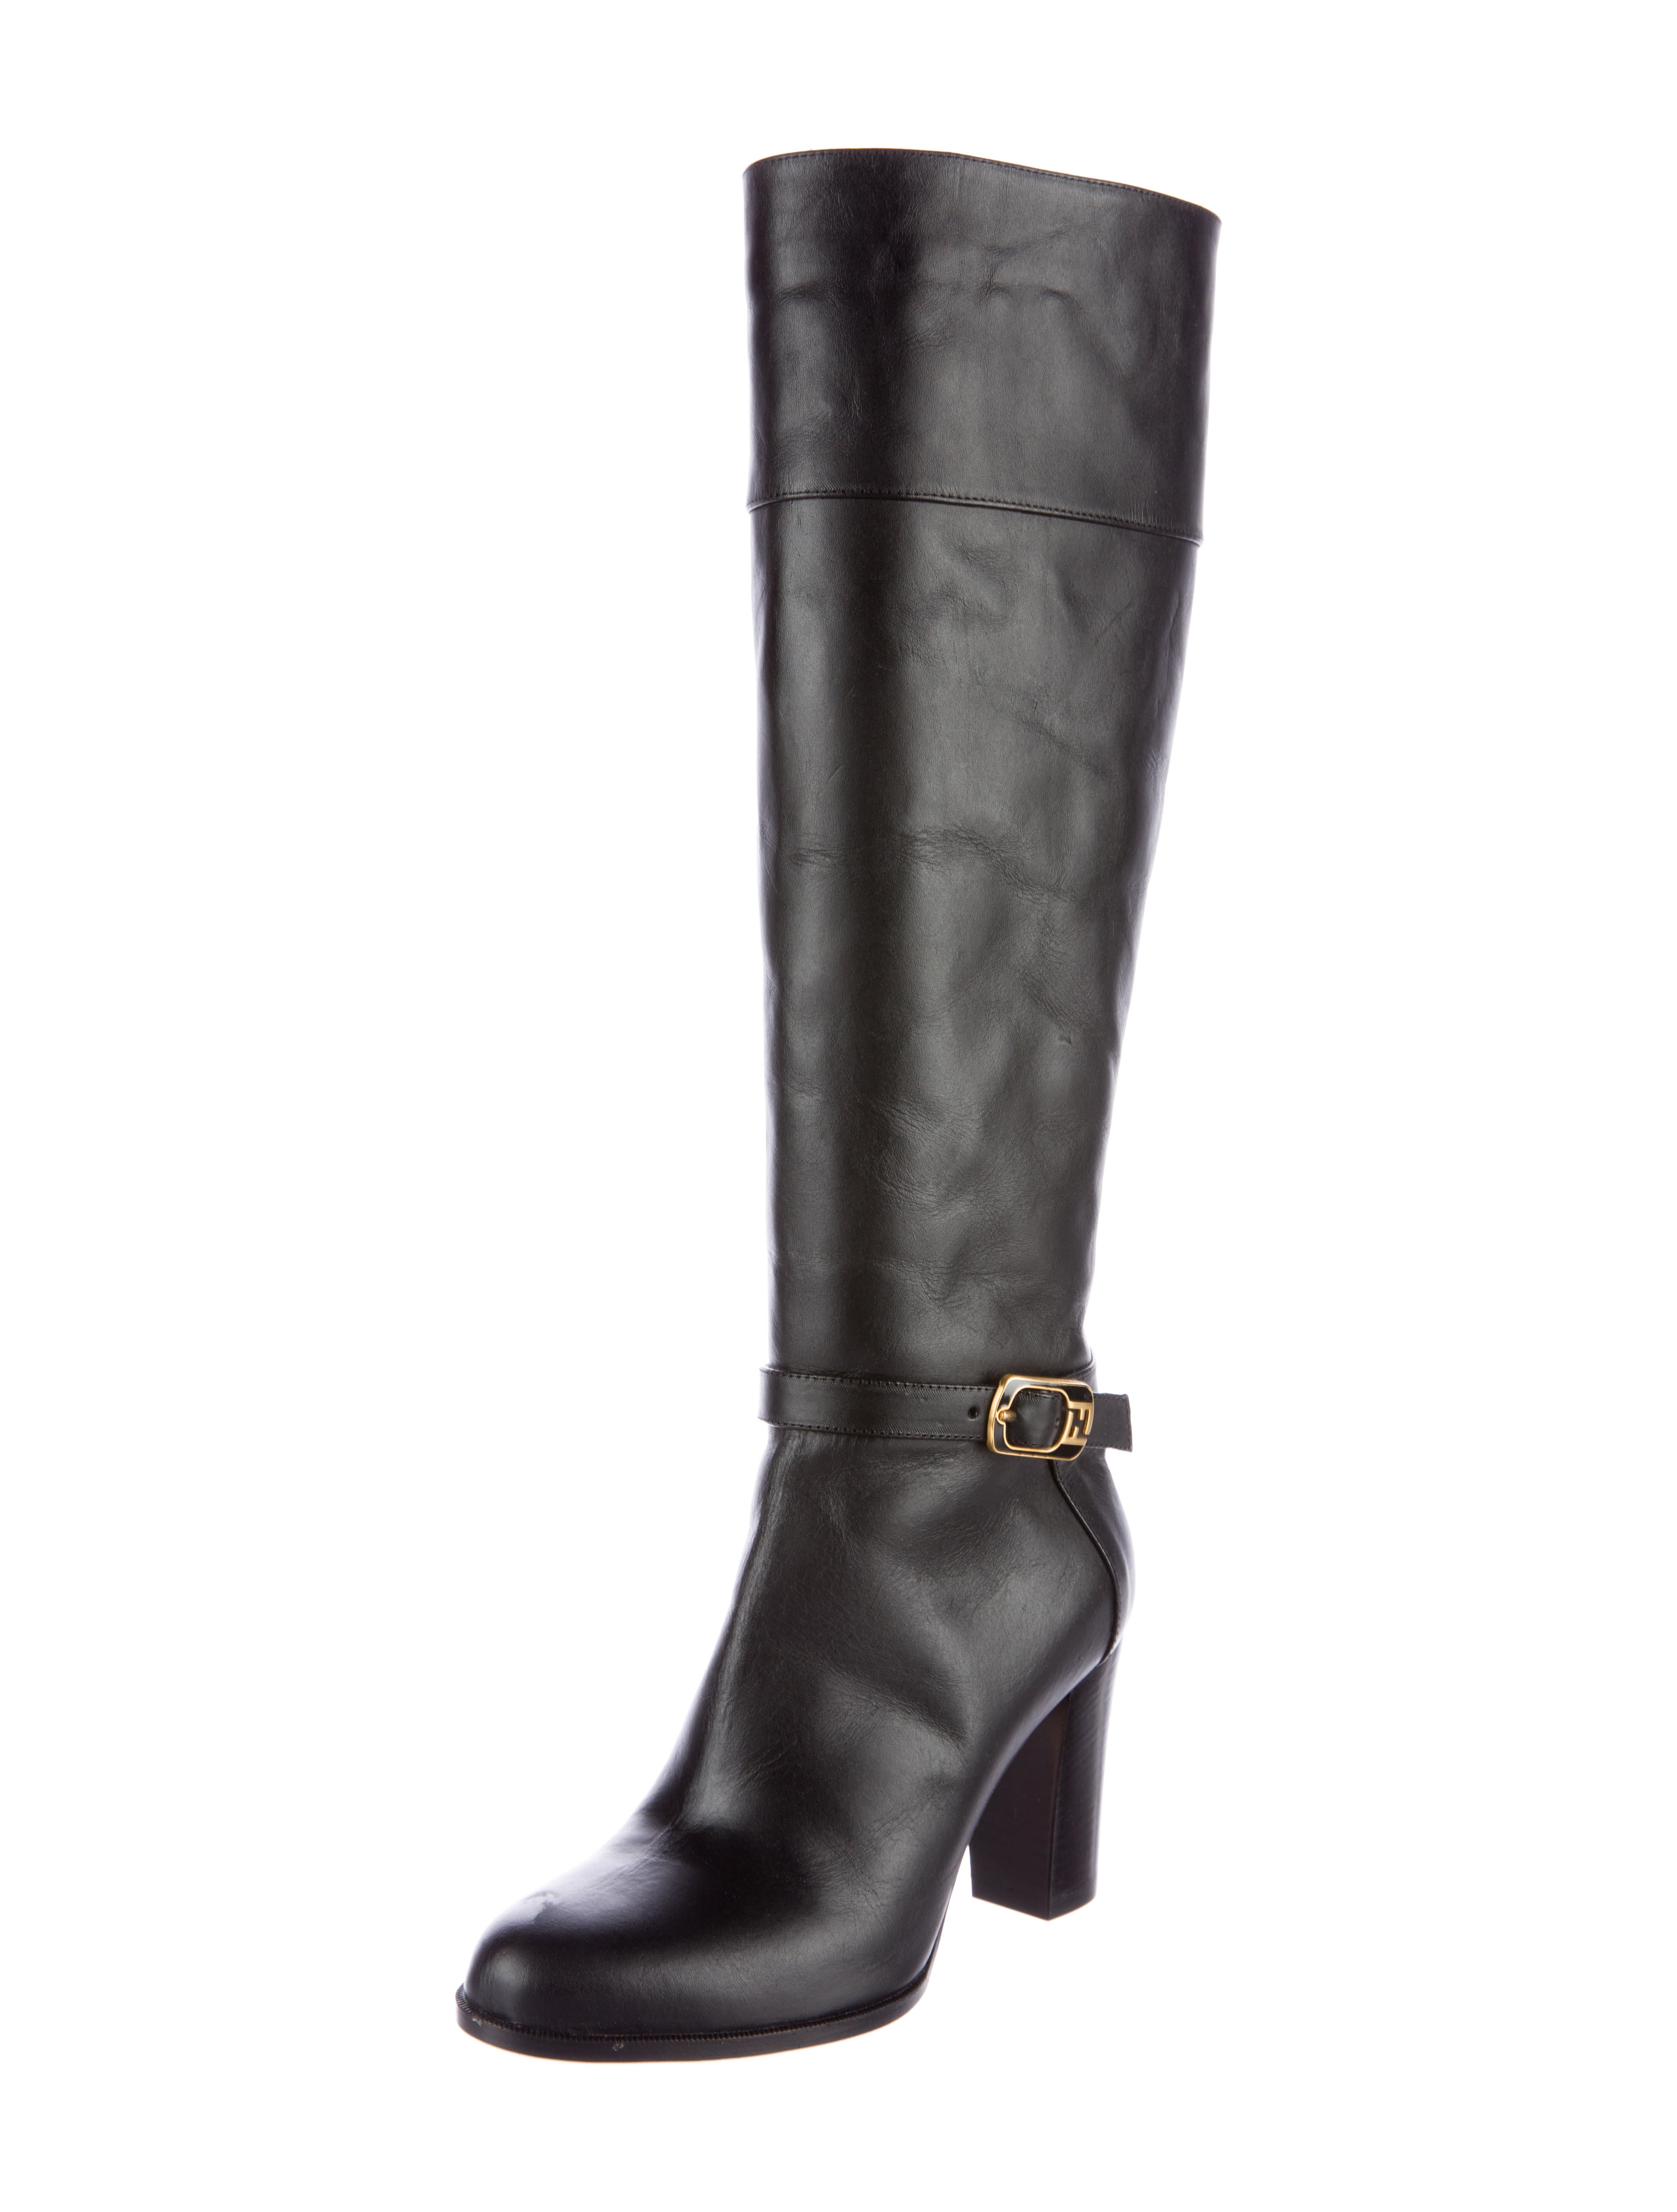 fendi buckle accented knee high boots shoes fen49919